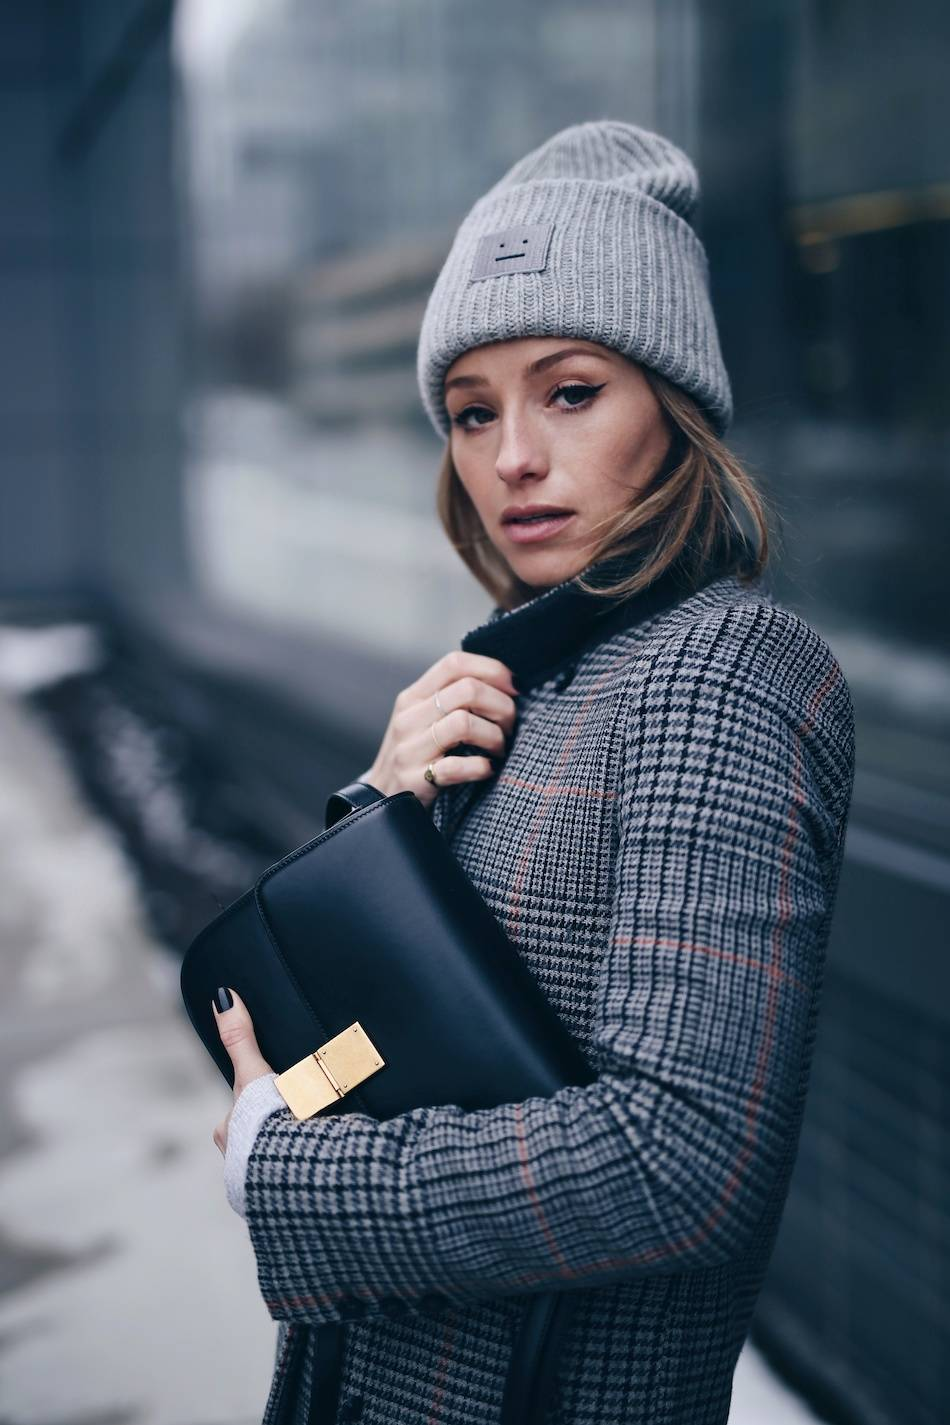 Style and beauty blogger Jill Lansky of The August Diaries on how to stay warm + stylish in the winter in Acne Pansy toque, cat eye makeup